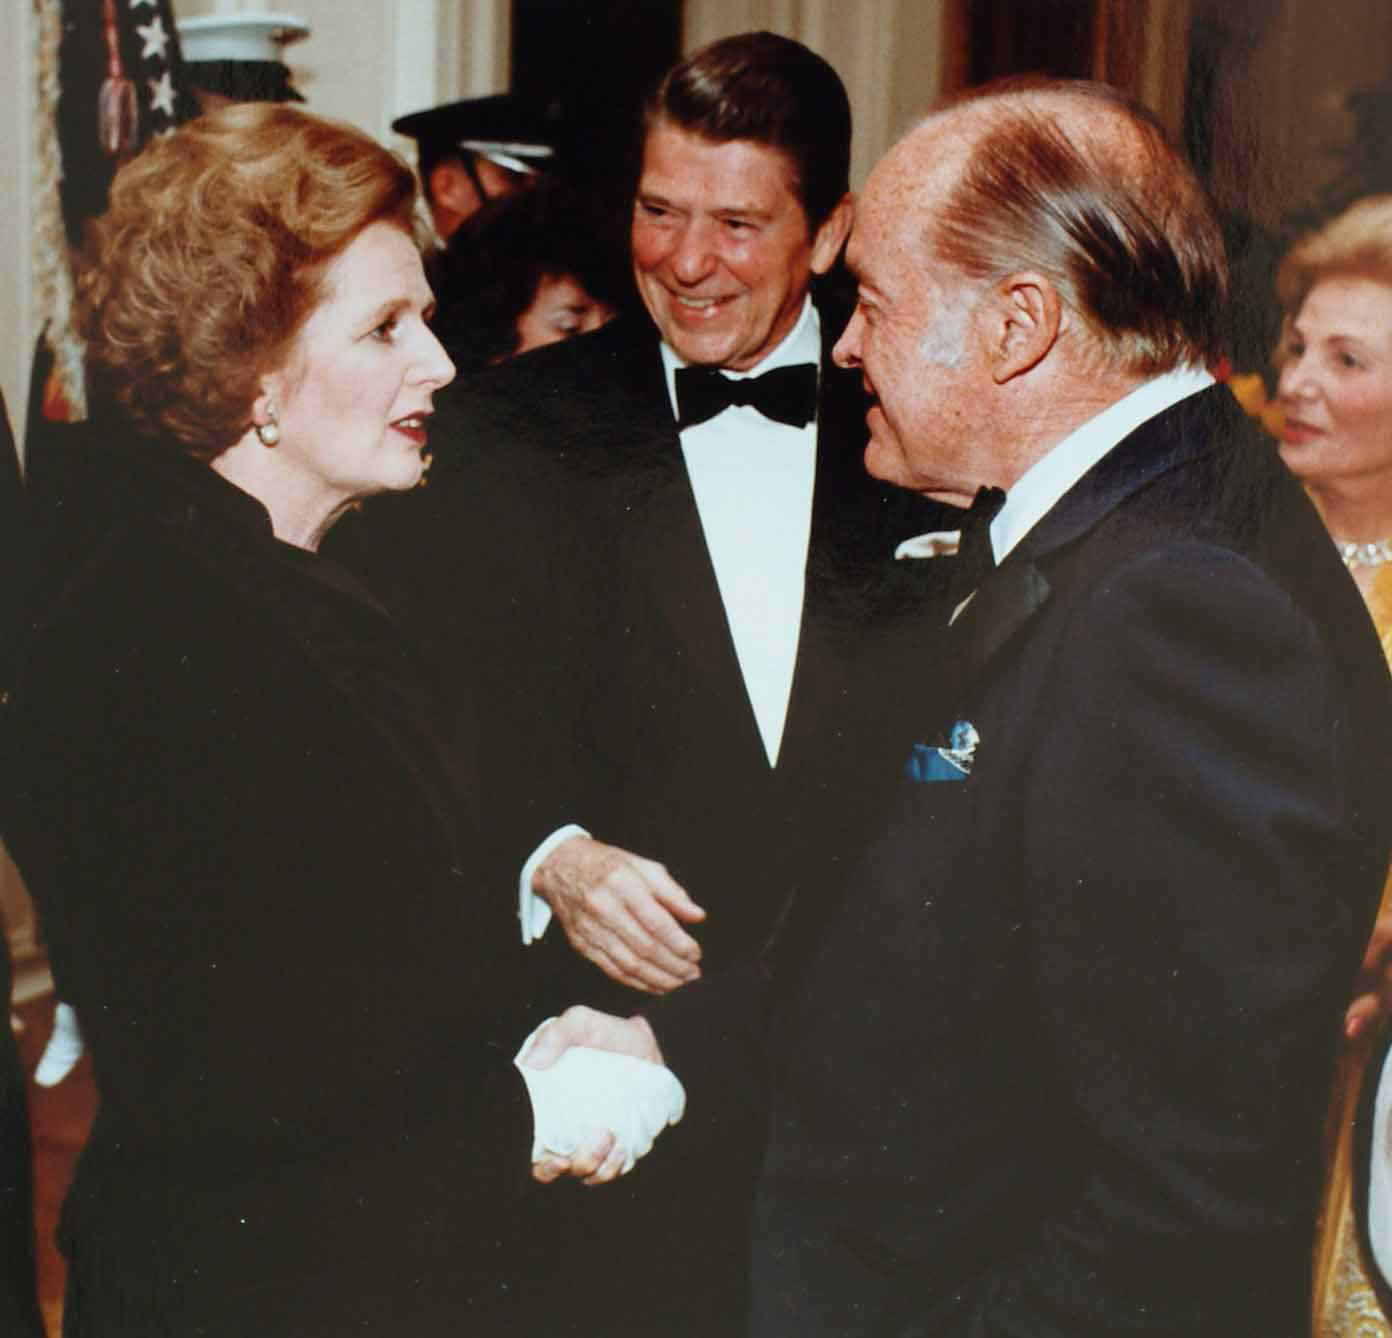 https://i0.wp.com/upload.wikimedia.org/wikipedia/commons/d/d8/Thatcher_with_Reagan_and_Bob_Hope.jpg